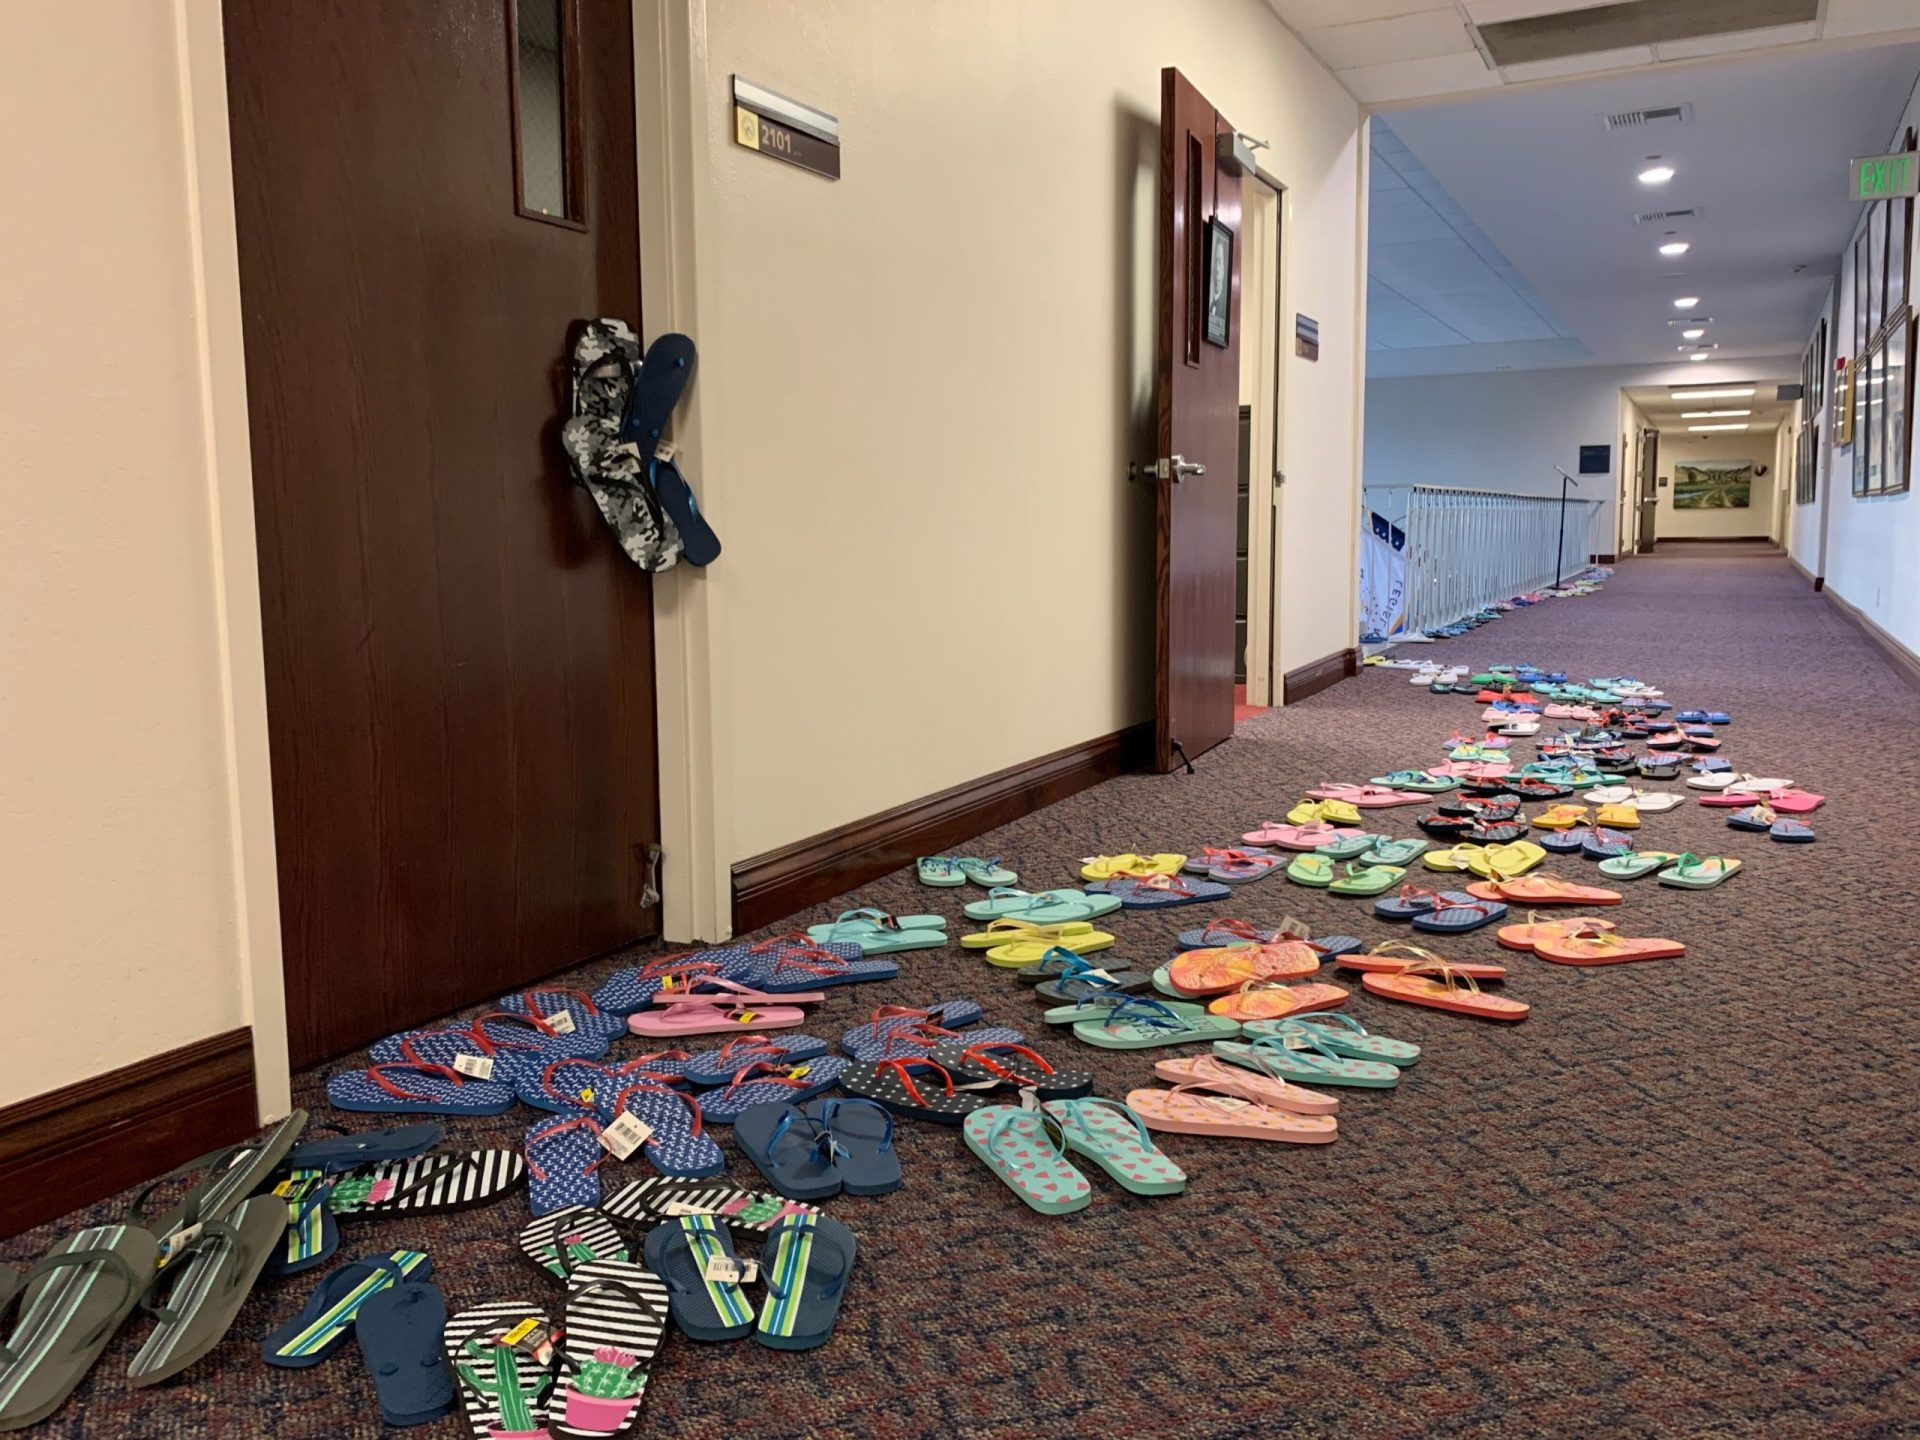 Democrats placed flip flops outside Sen. Keith Pickard's office door during the 31st special session after he said he'd support a mining tax build, then flipped his vote